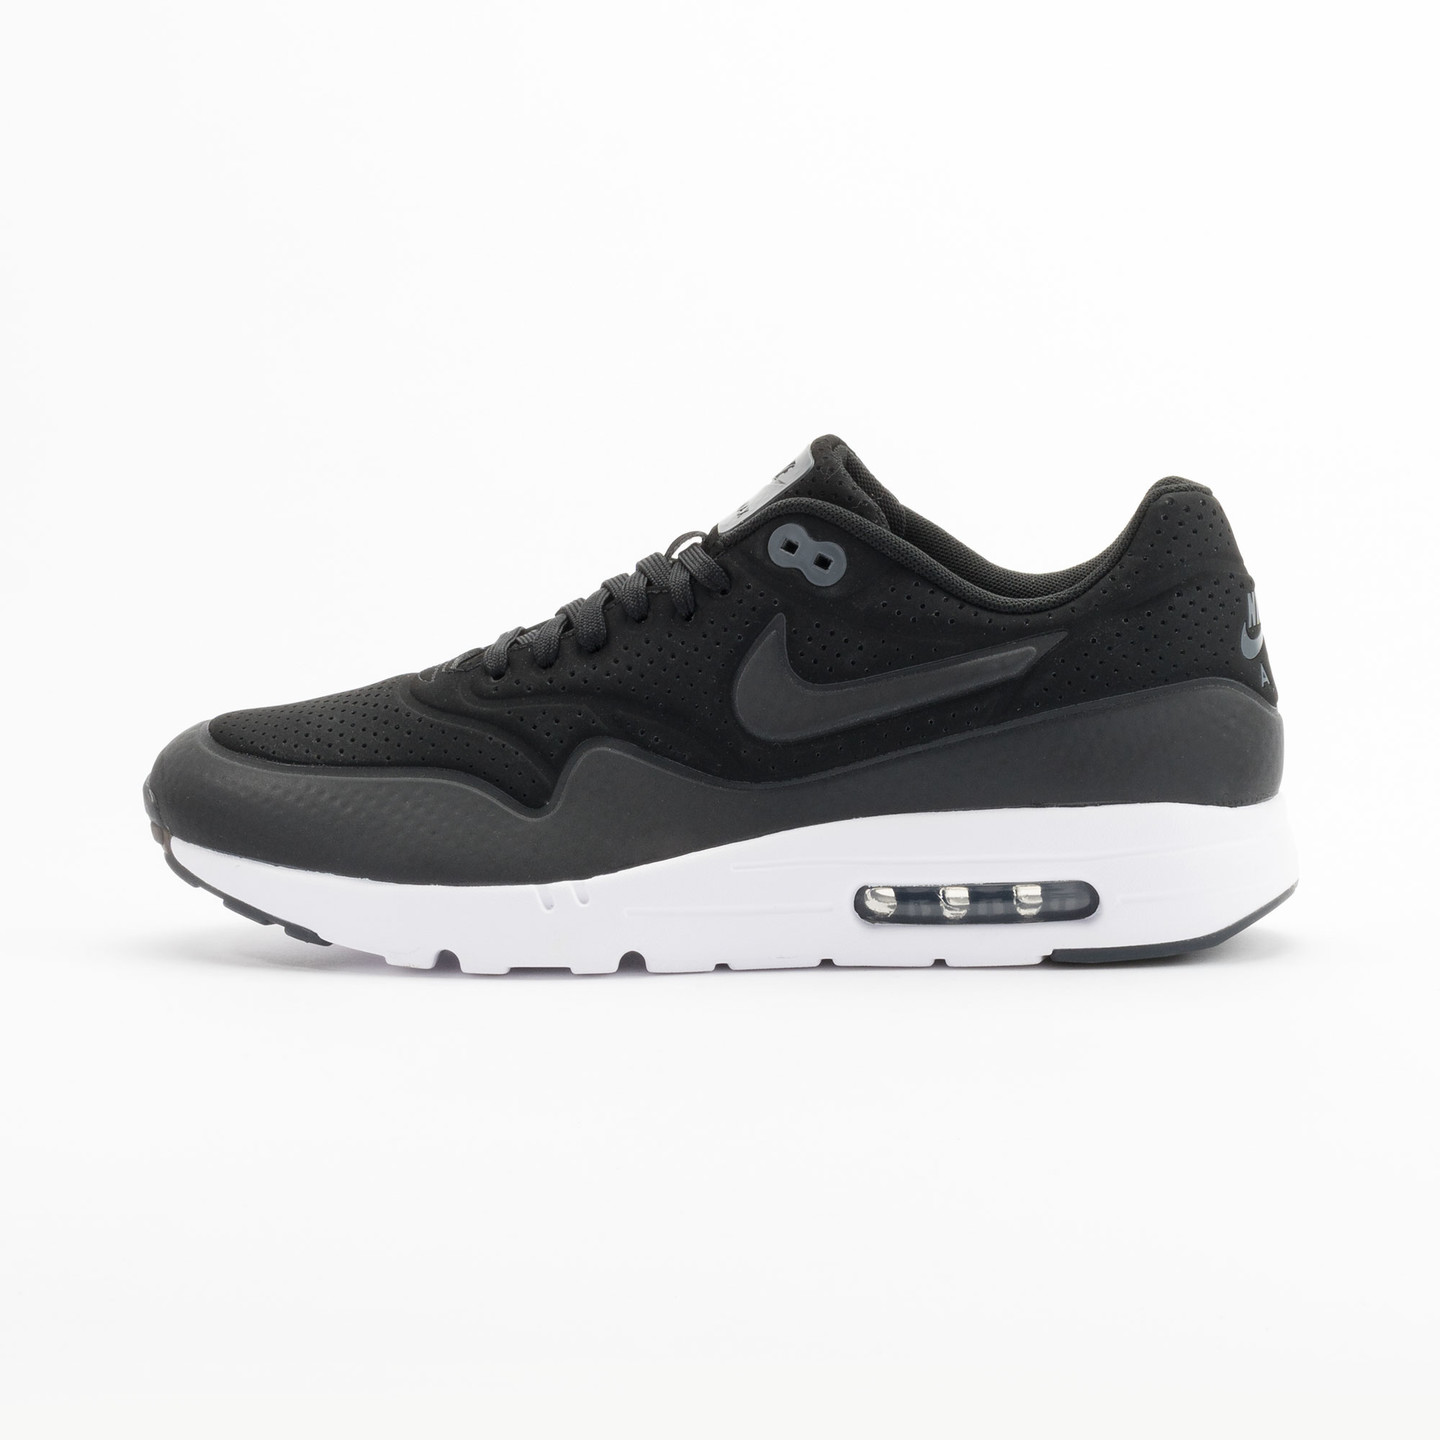 Nike Air Max 1 Ultra Moire Black Reflective / White 705297-010-42.5